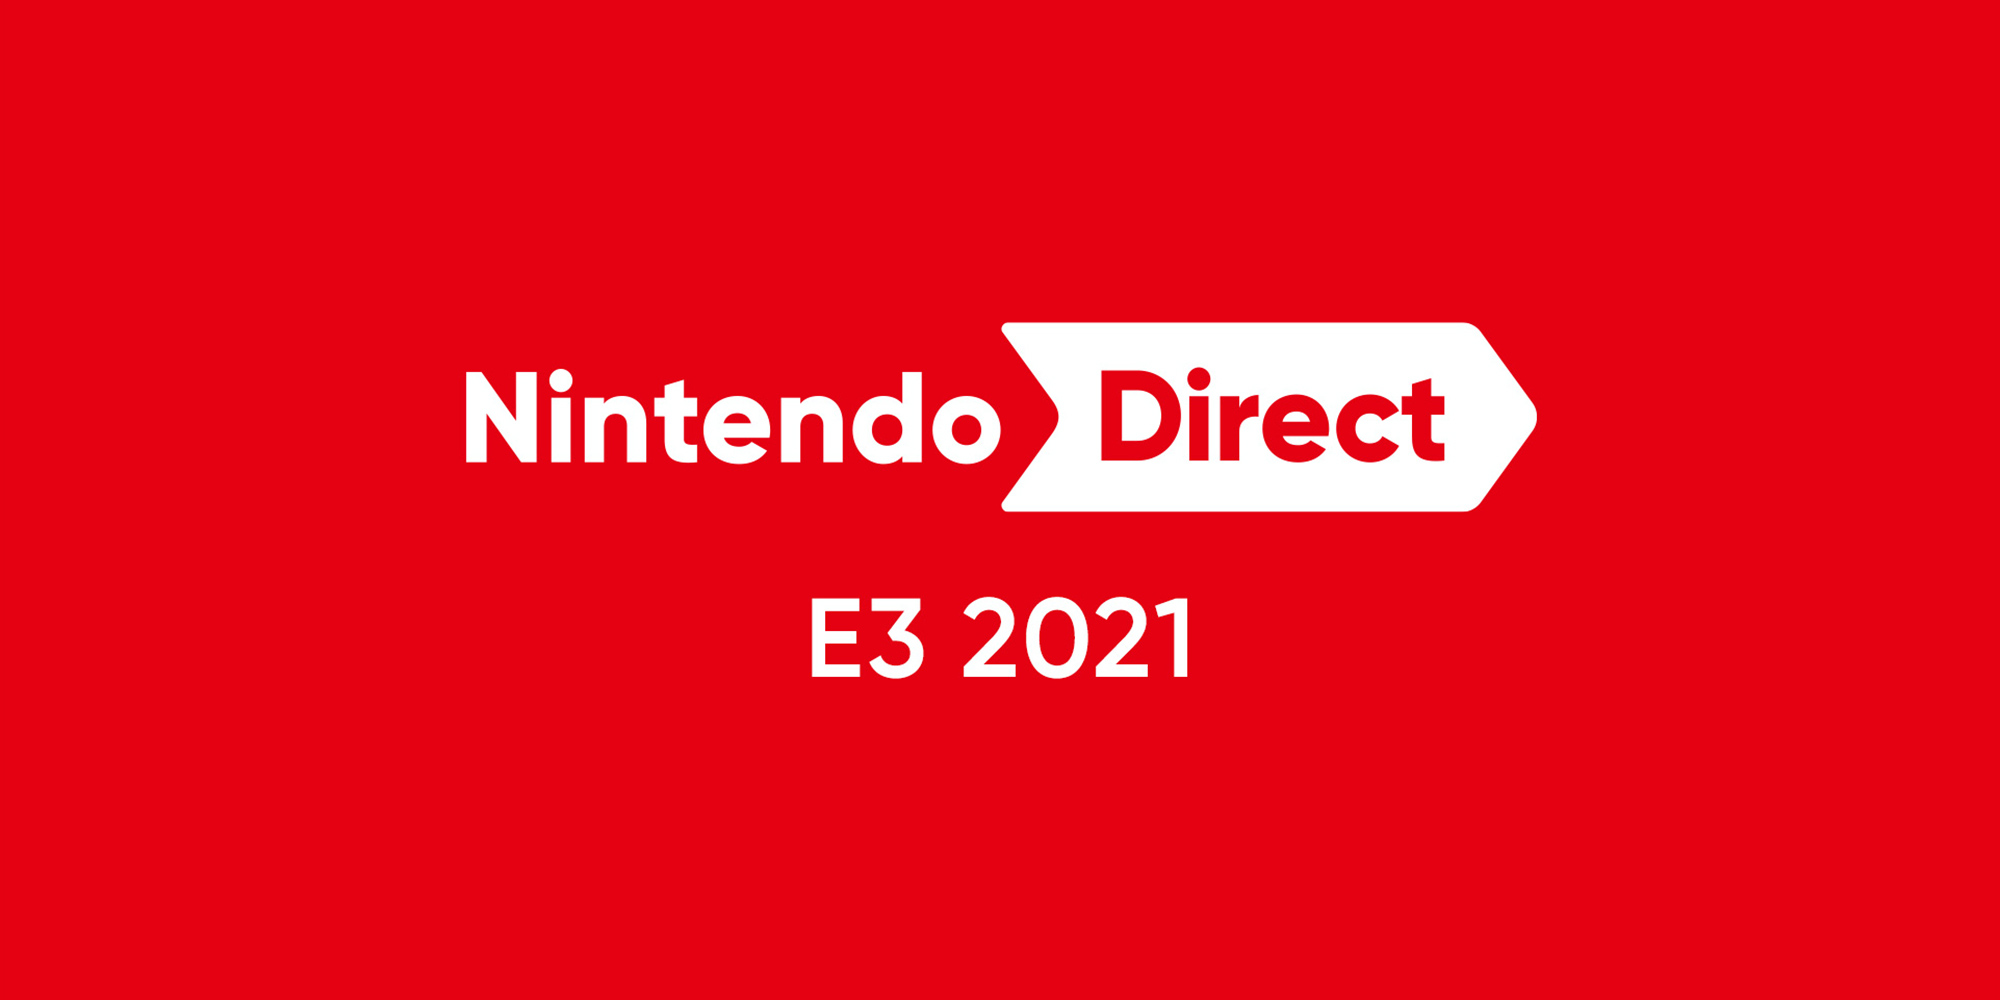 E3 2021: The point about Nintendo